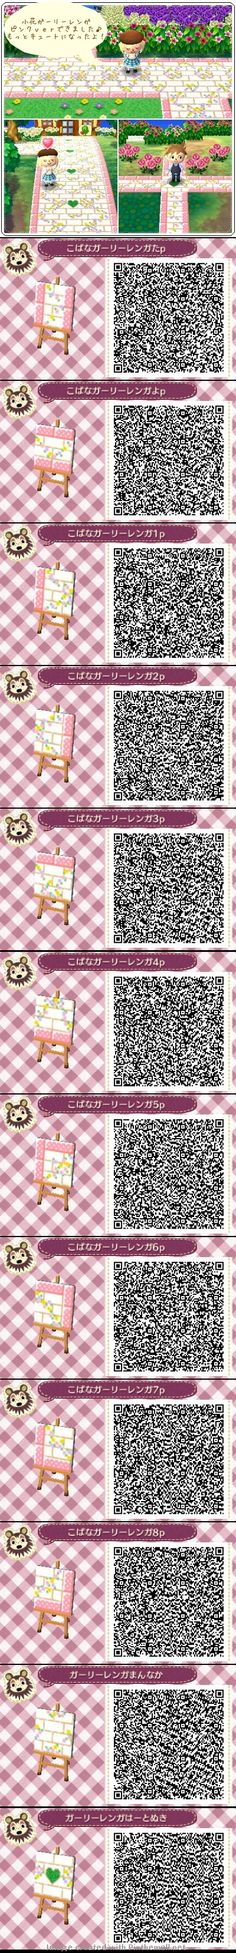 Lovely light pink path QR code